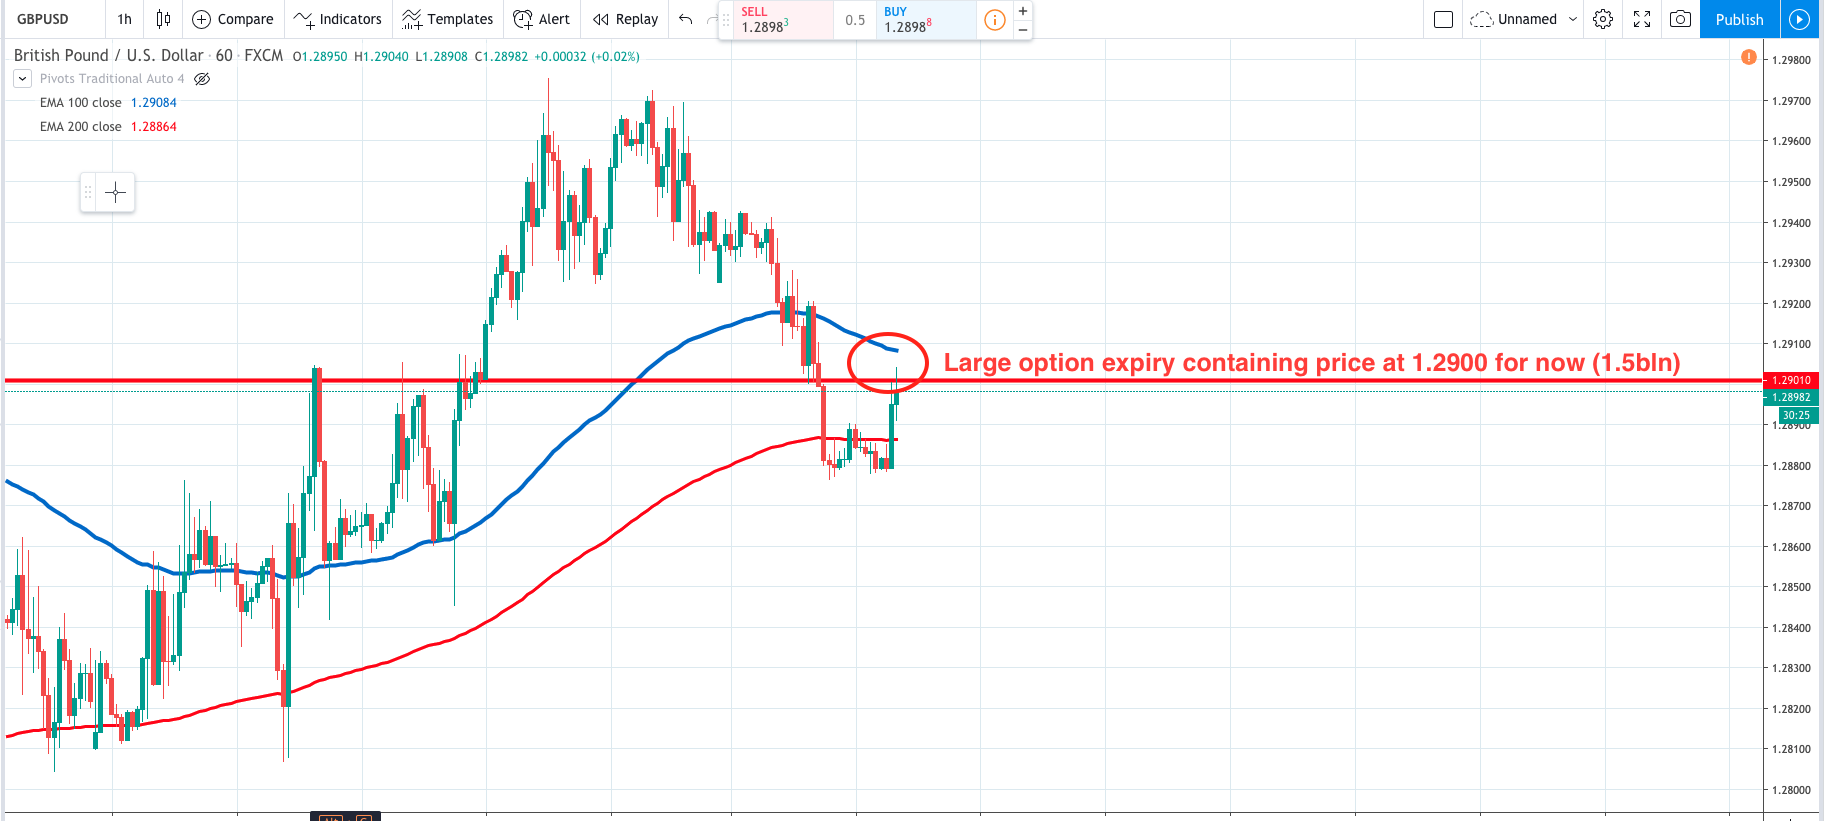 GBPUSD at option expiry level